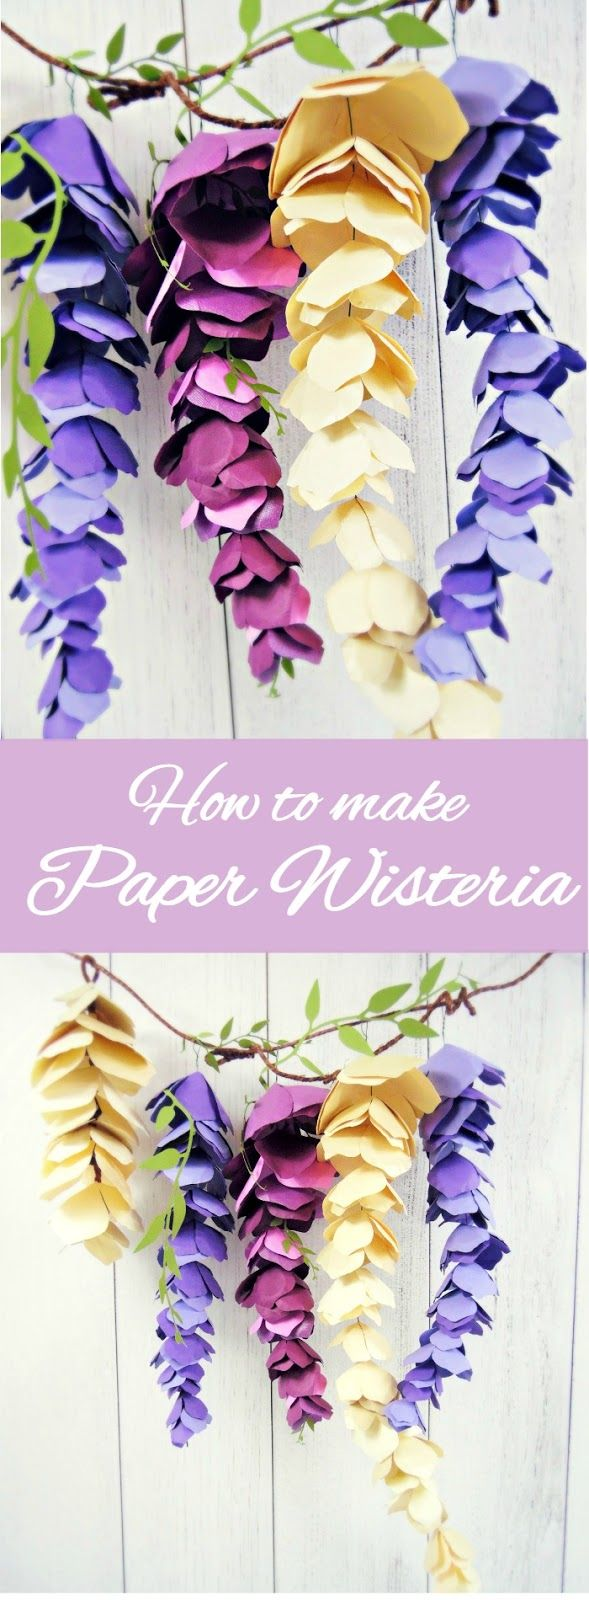 Hanging Paper Wisteria Tutorial Templates Pinterest Diy Paper